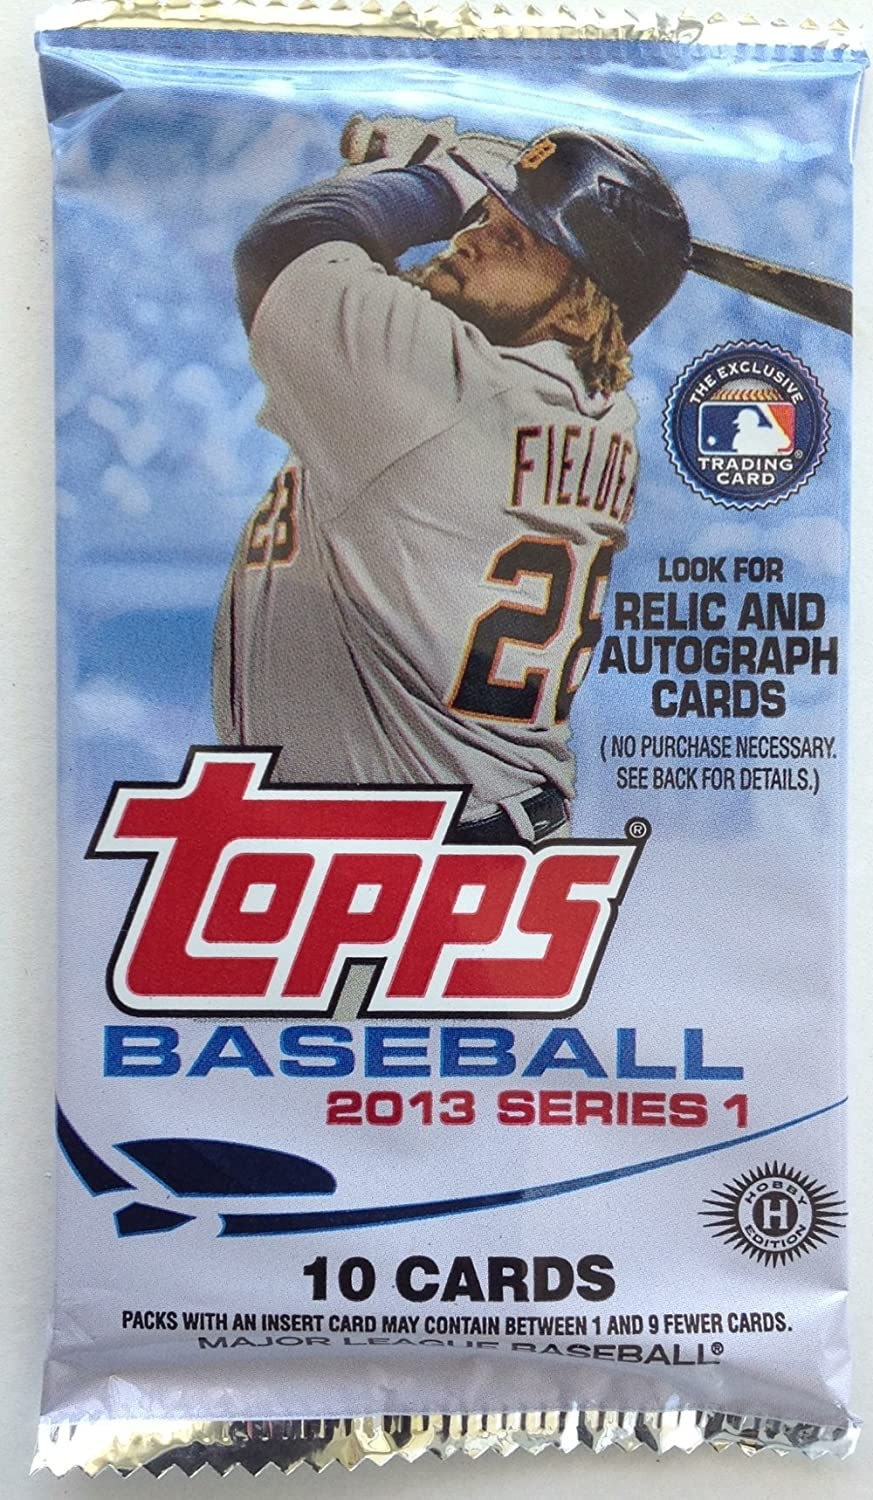 1 Pack containing 10 cards of 2013 Topps Hobby Series 1 Baseball Cards The Topps Company Inc.